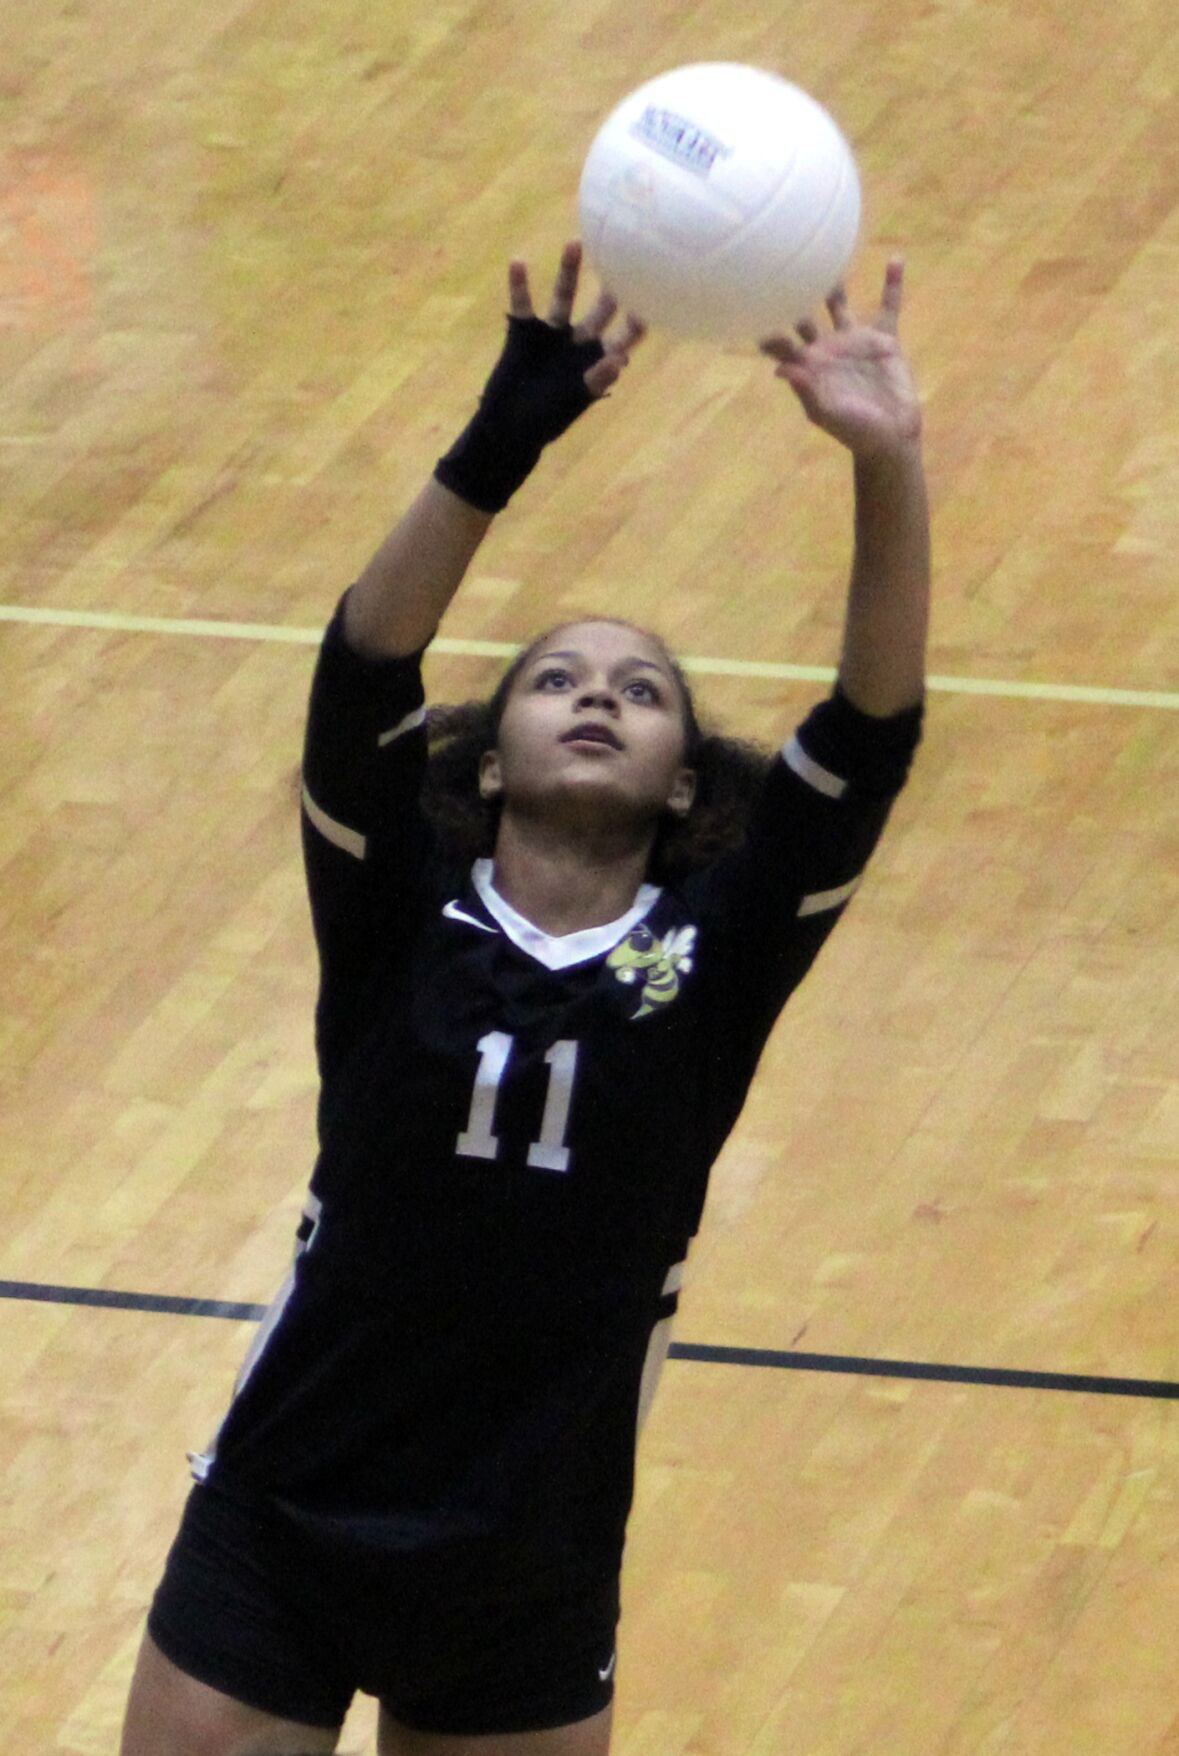 Rockmart volleyball team works through obstacles